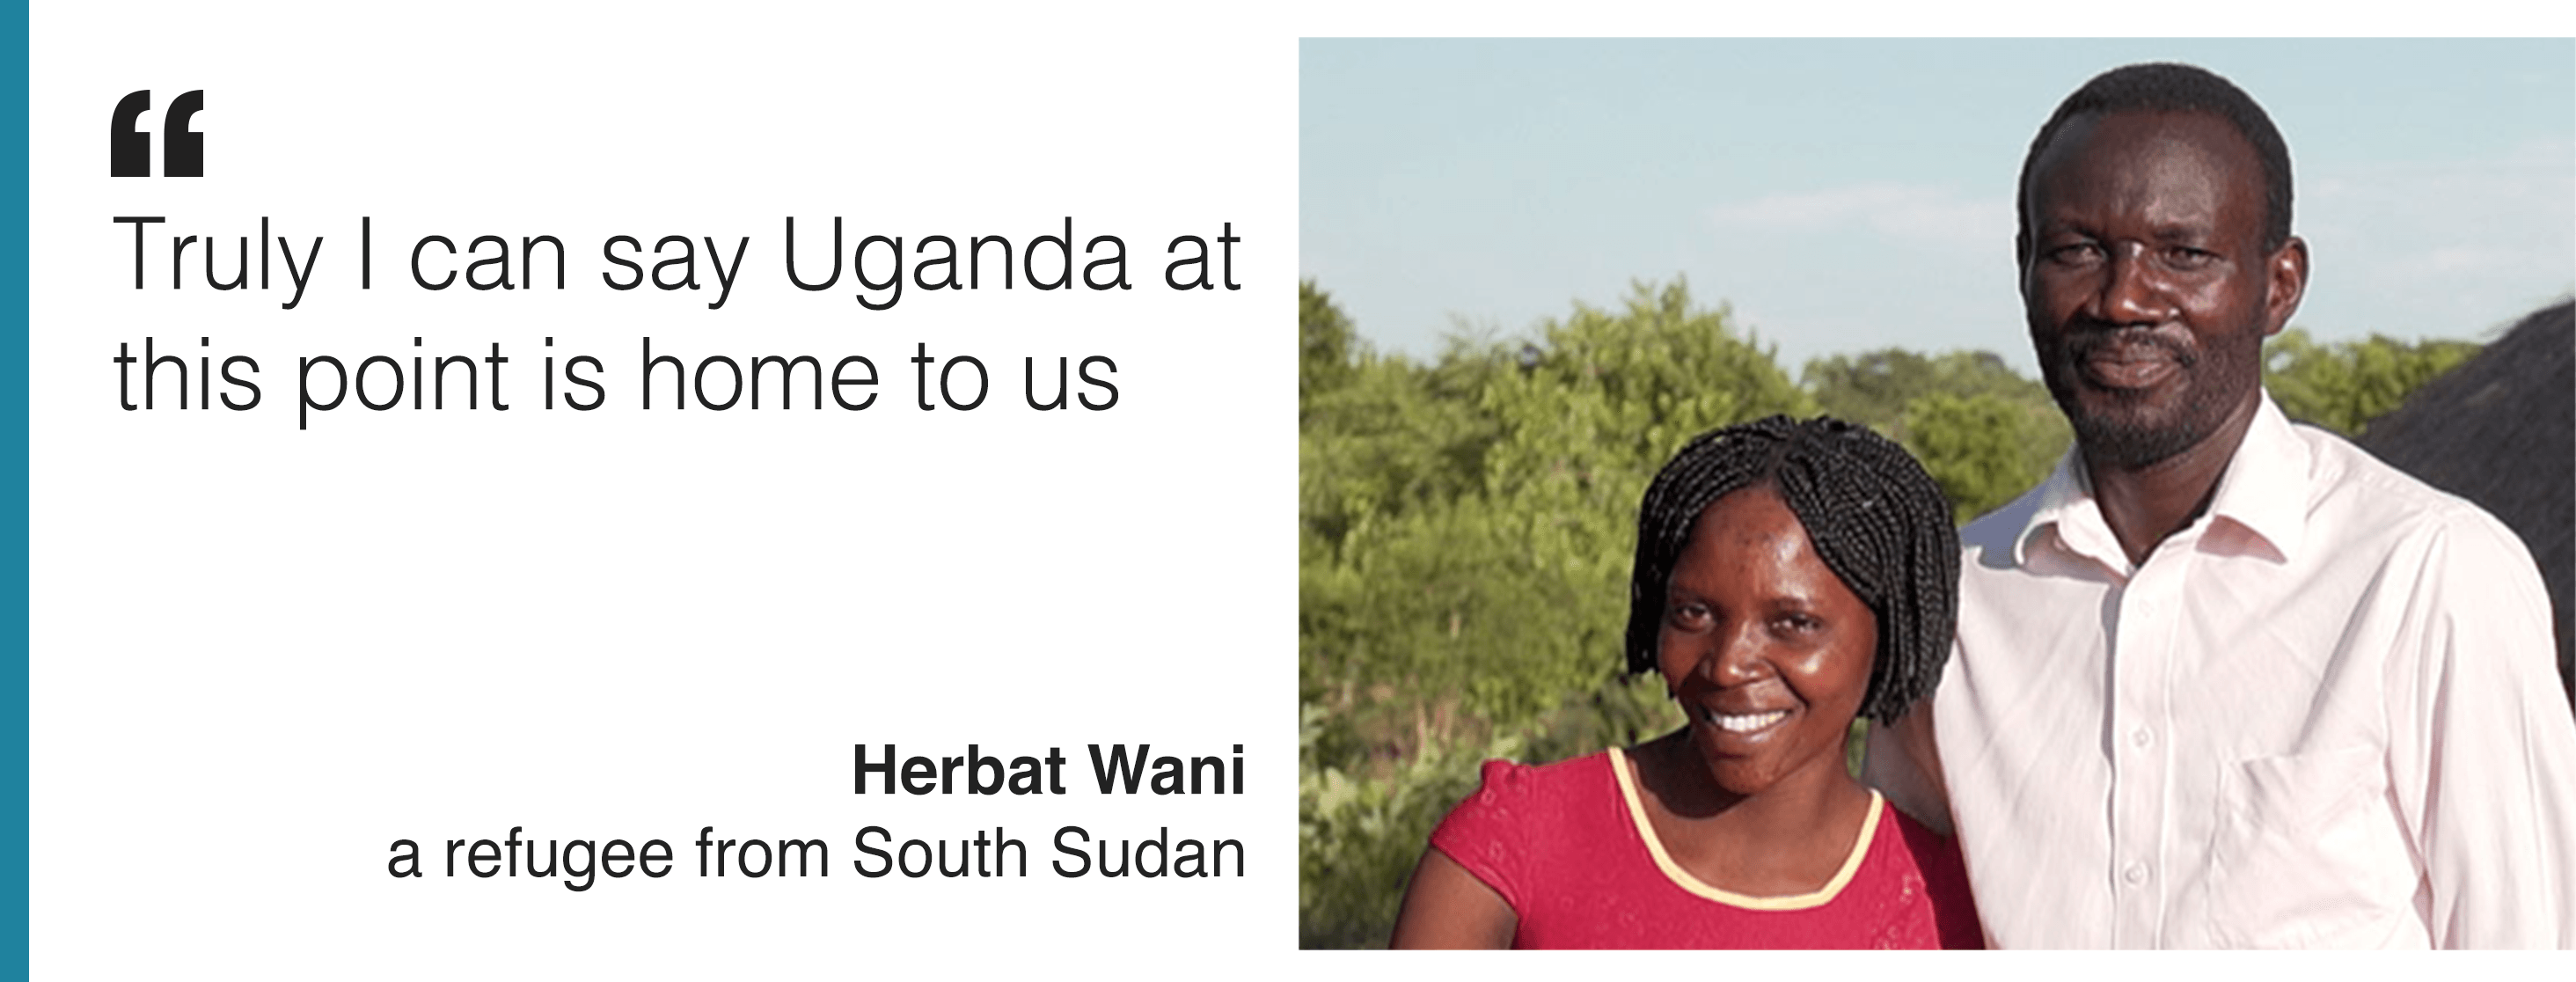 "Image and quote from Herbat Wani, who says: ""Truly I can say Uganda at this point is home to us."""